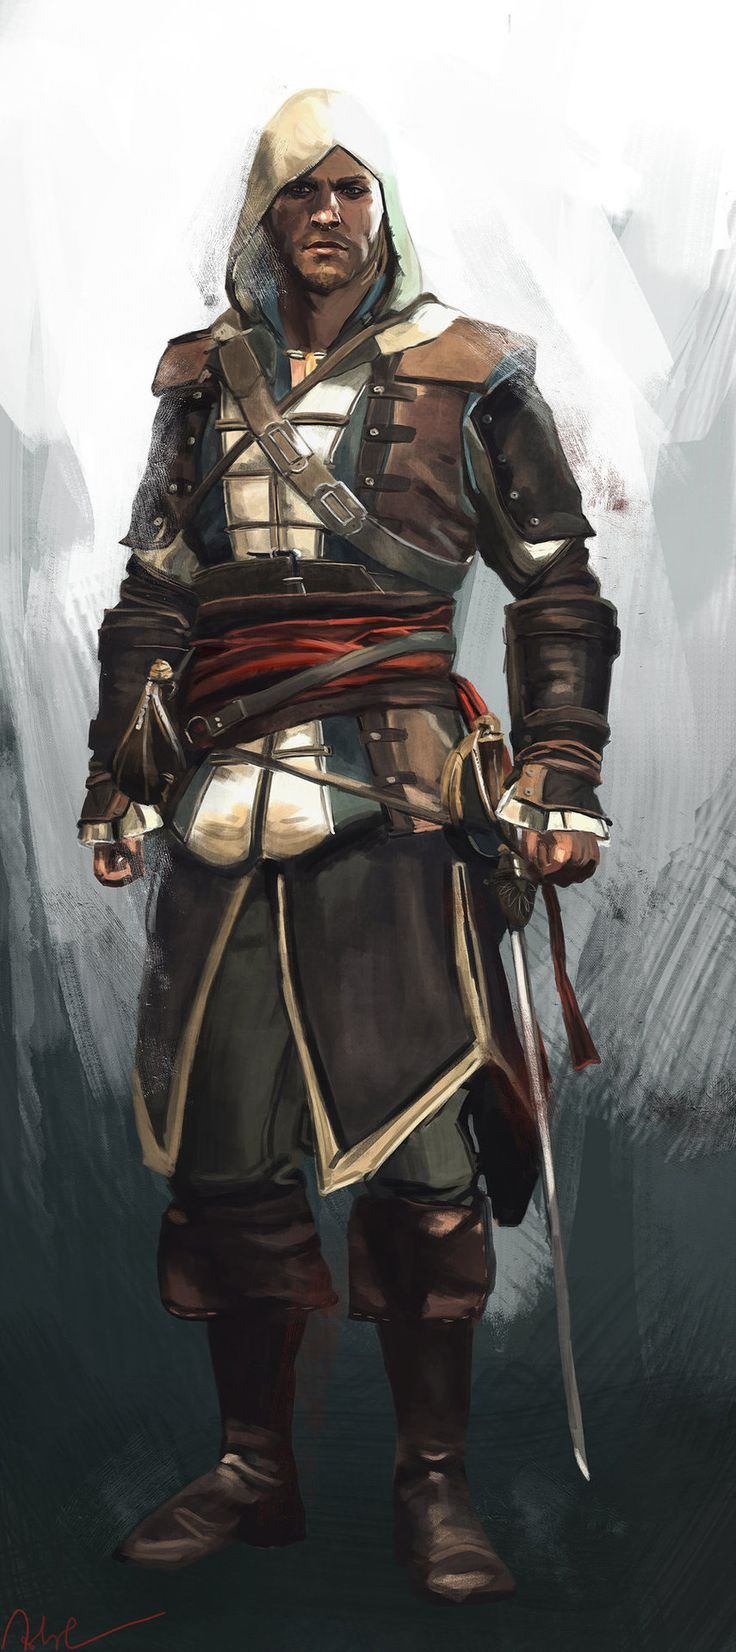 Assassin's Creed IV: Black Flag - Edward Kenway by Namecchan